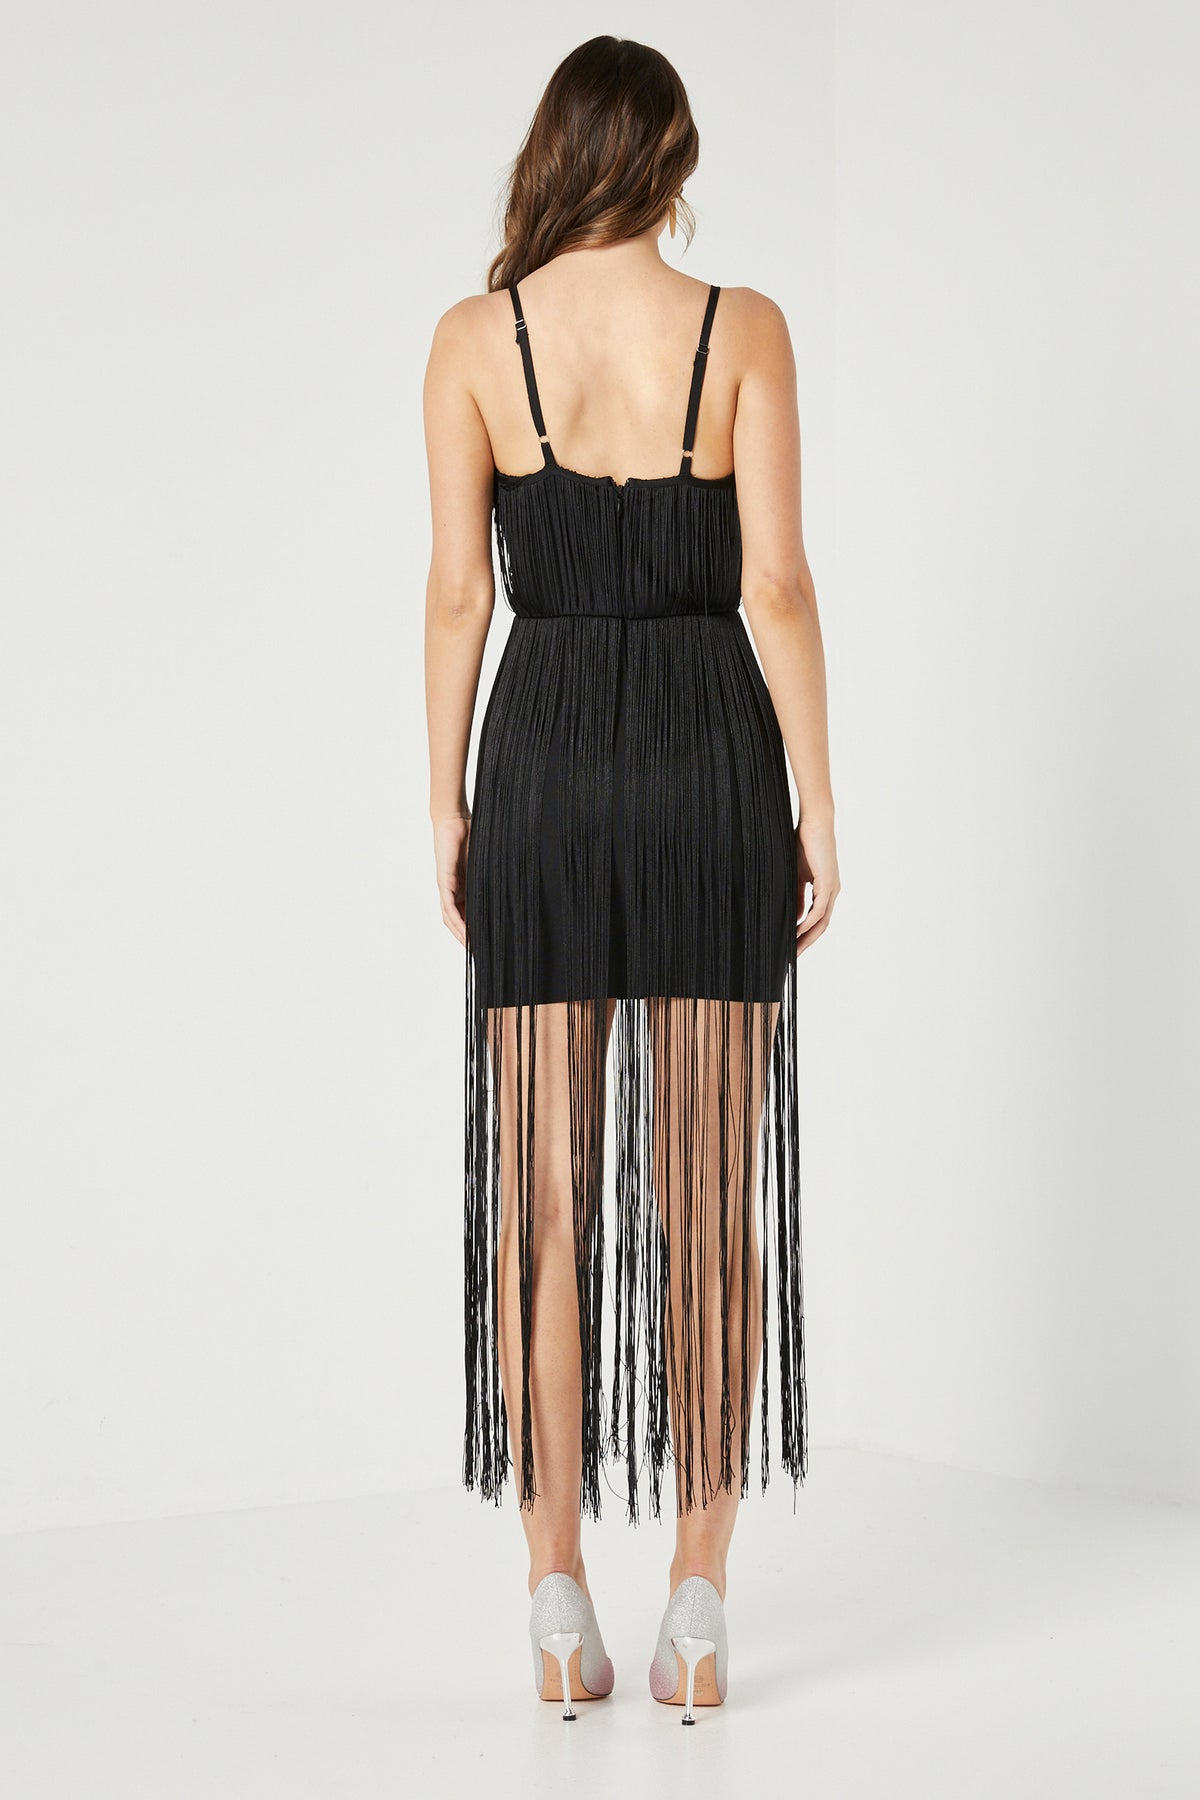 MARIANA FRINGE DRESS